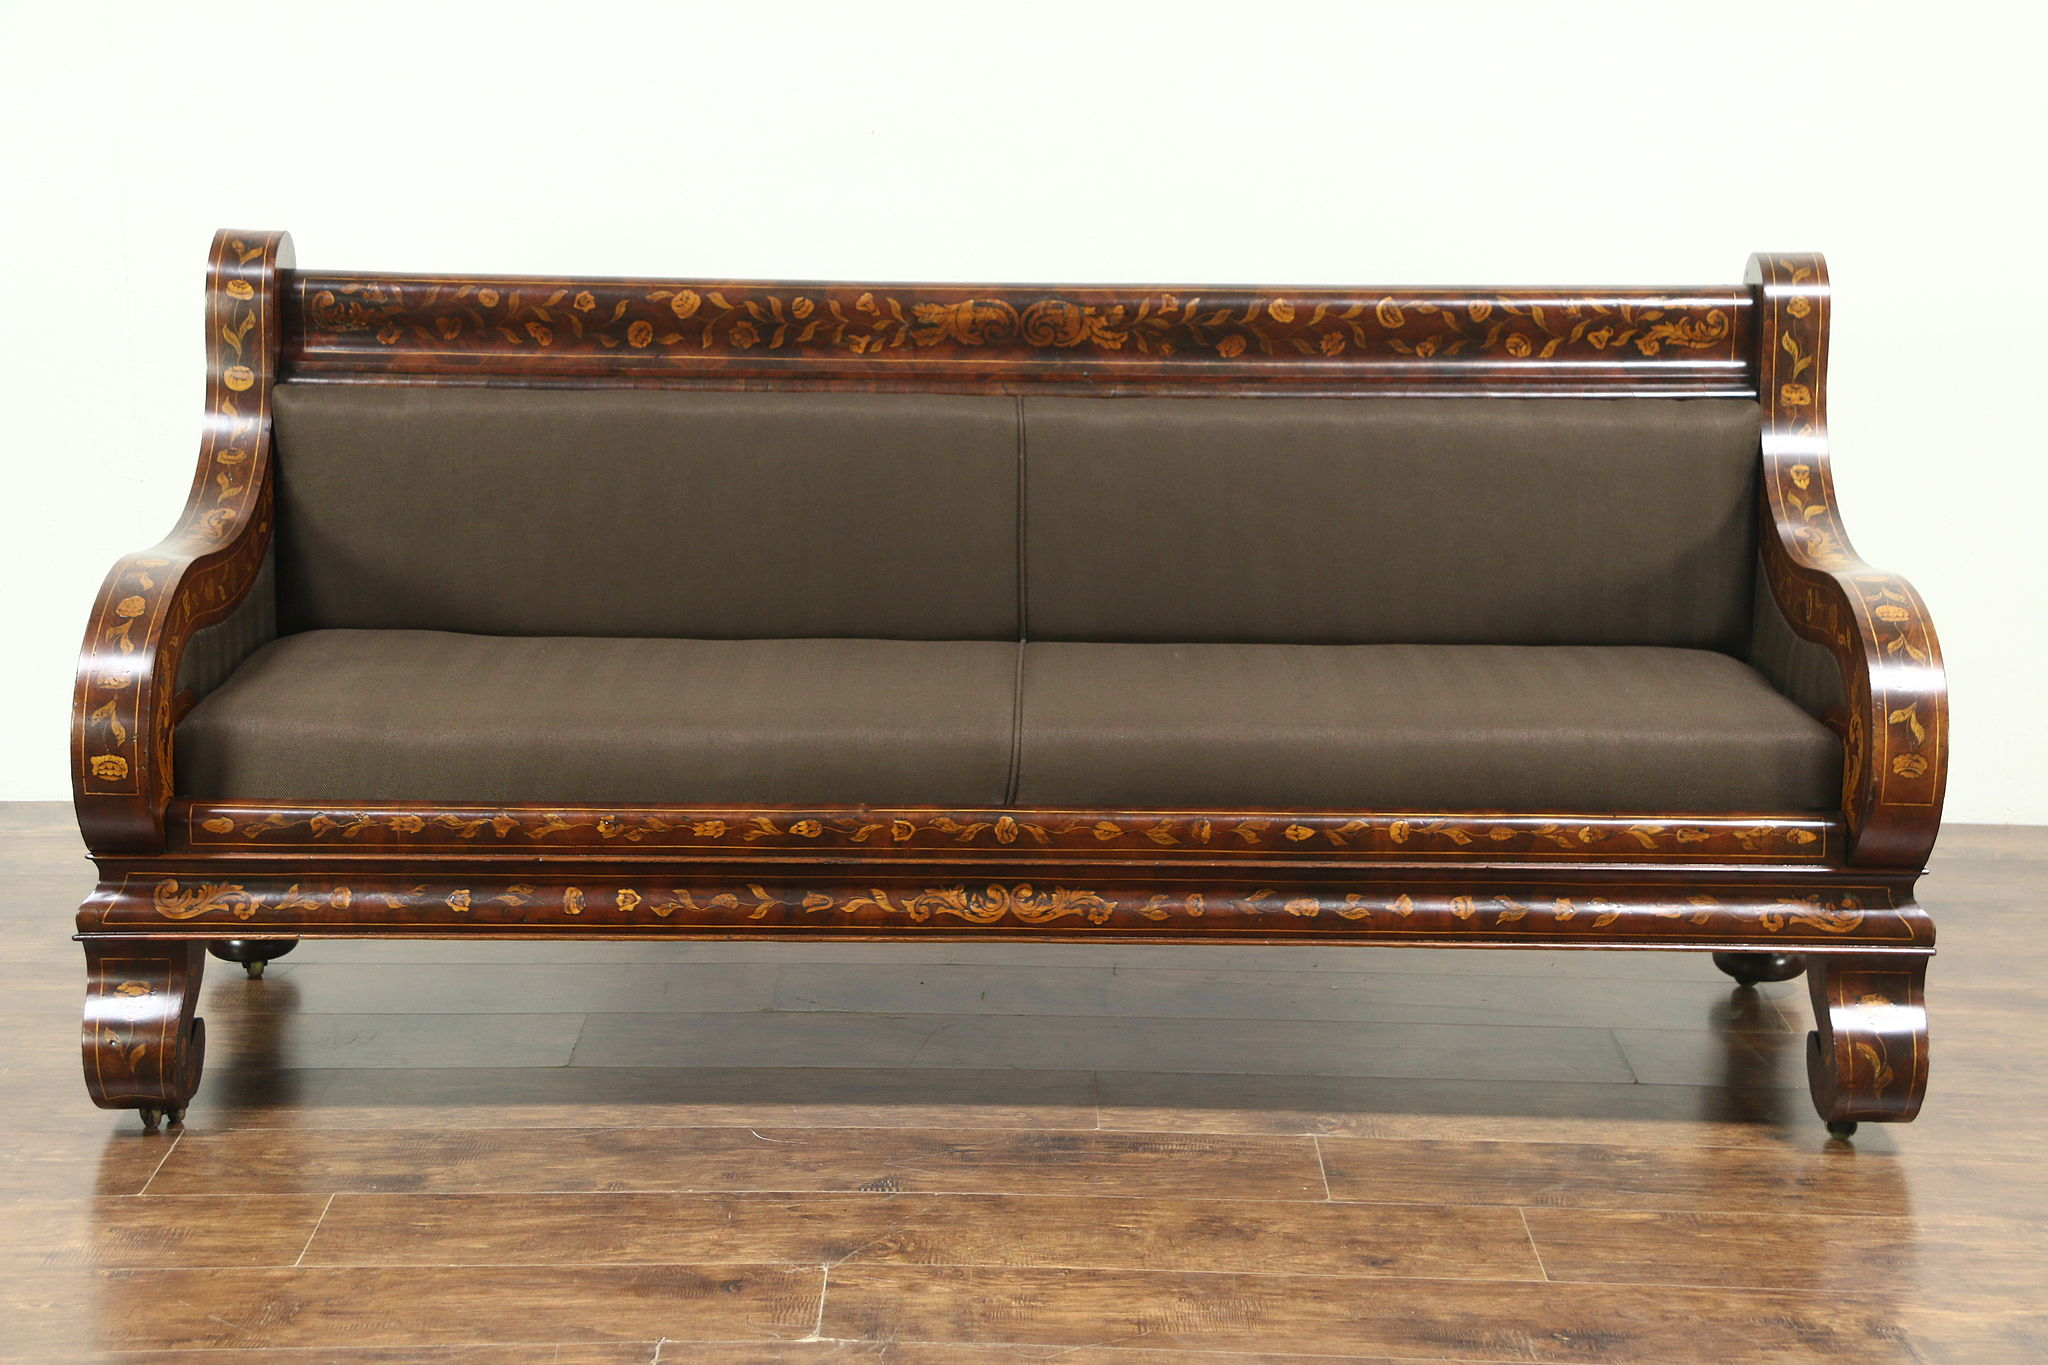 Sofa Dutch Dutch Inlaid Marquetry 1860 Antique Mahogany Sofa Newly Upholstered